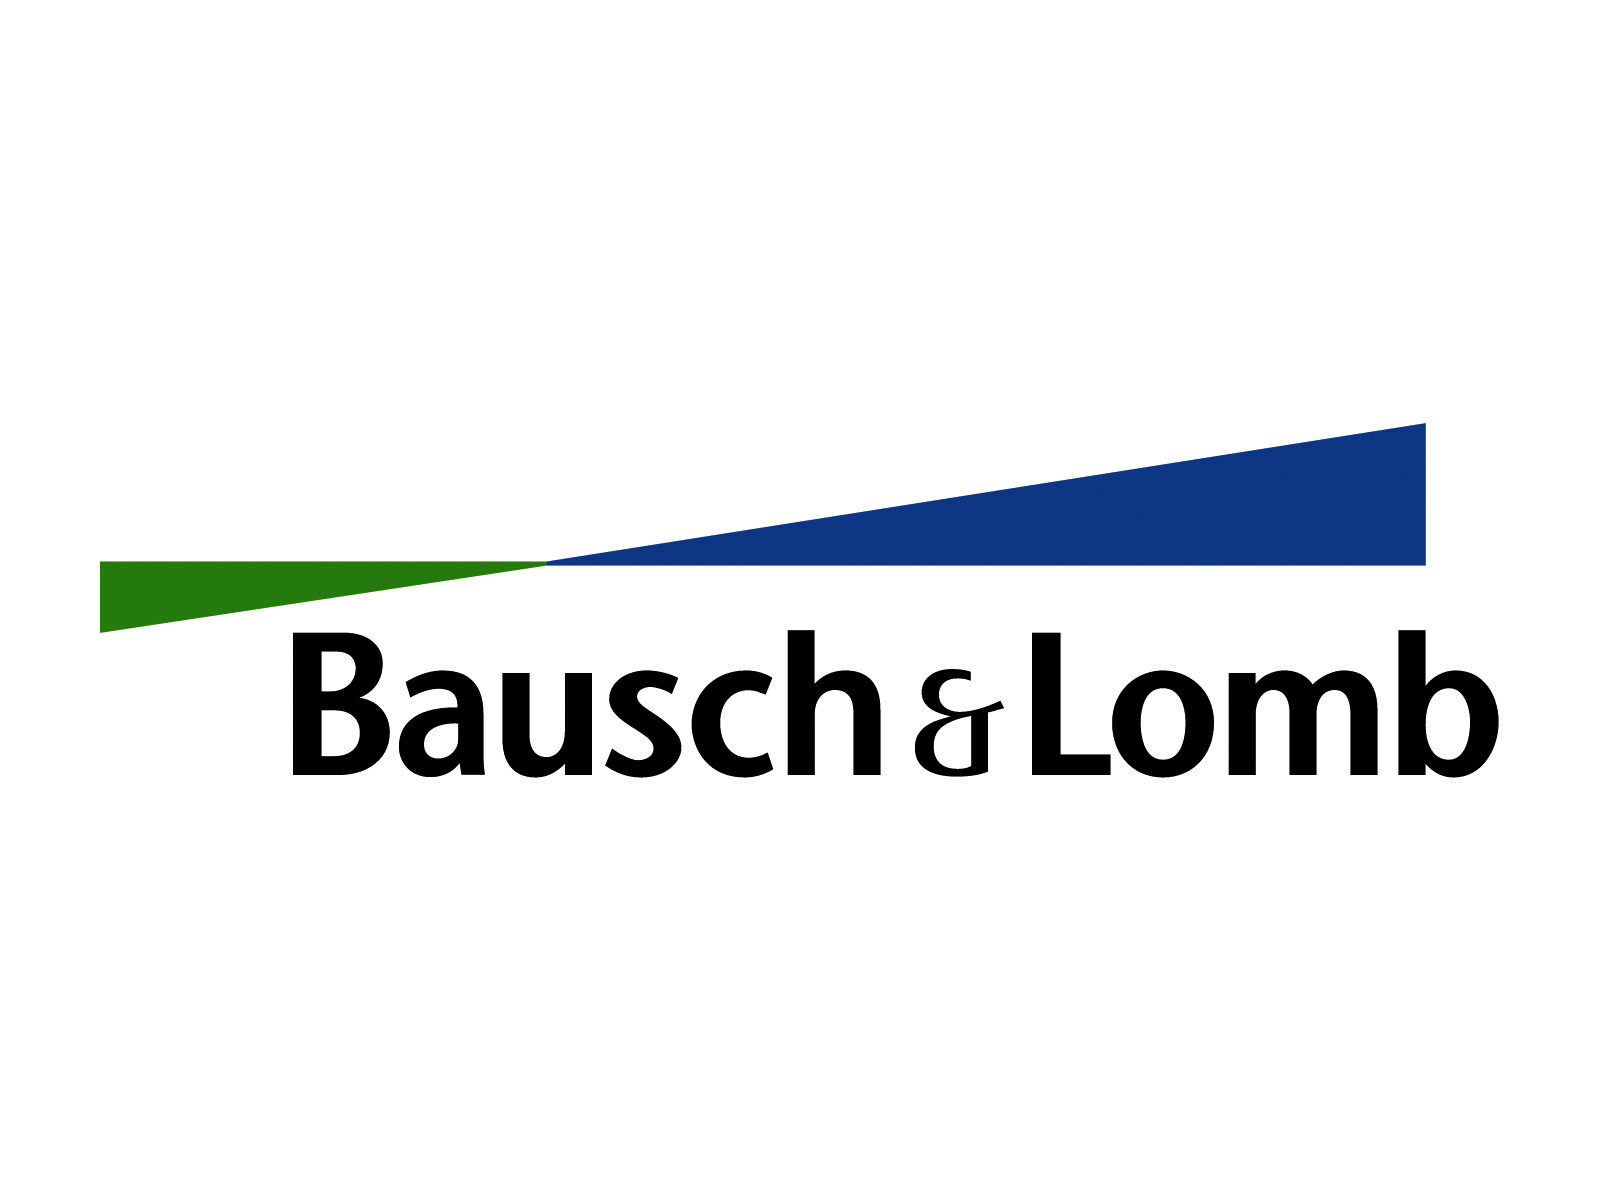 Bauch & Lomb